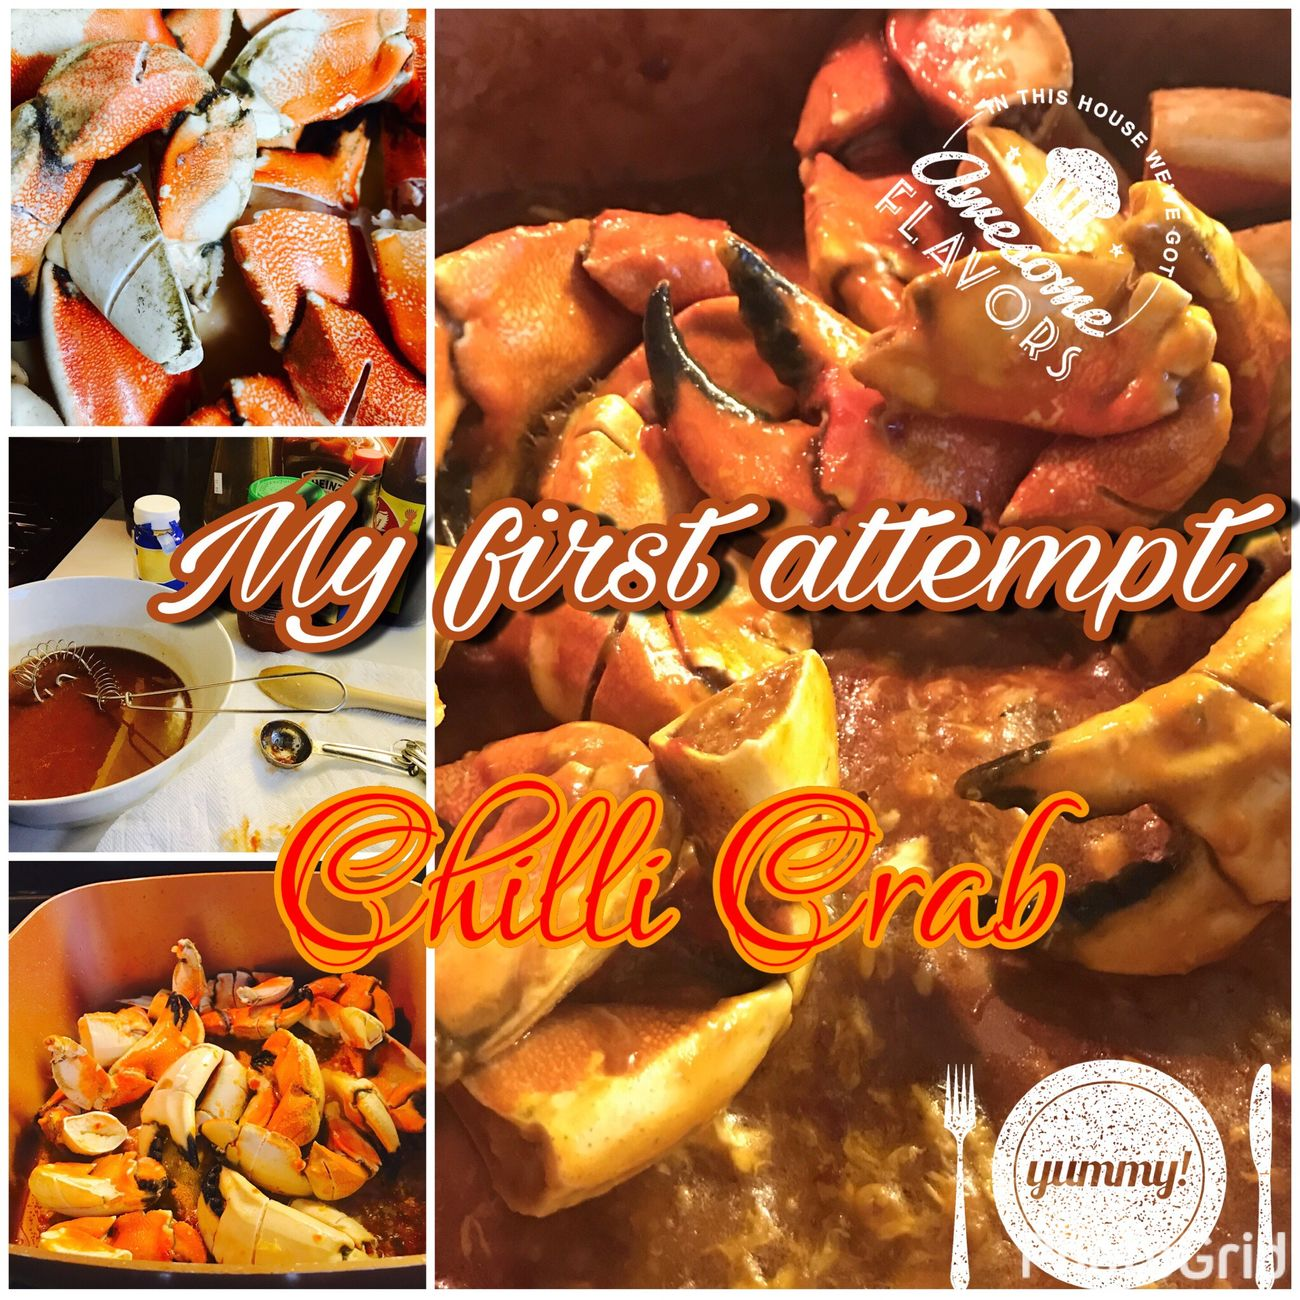 I lived in Singapore for nearly 8 years. I am Missing the Chili  crab which is a Food Delicacies Food And Drink This my First Attempt to Cooking At Home . Streamzoofamily Temptation No People Indulgence Indoors  Close-up I'm currently living in America Photo editor apps used Photogrid Mobile Photo